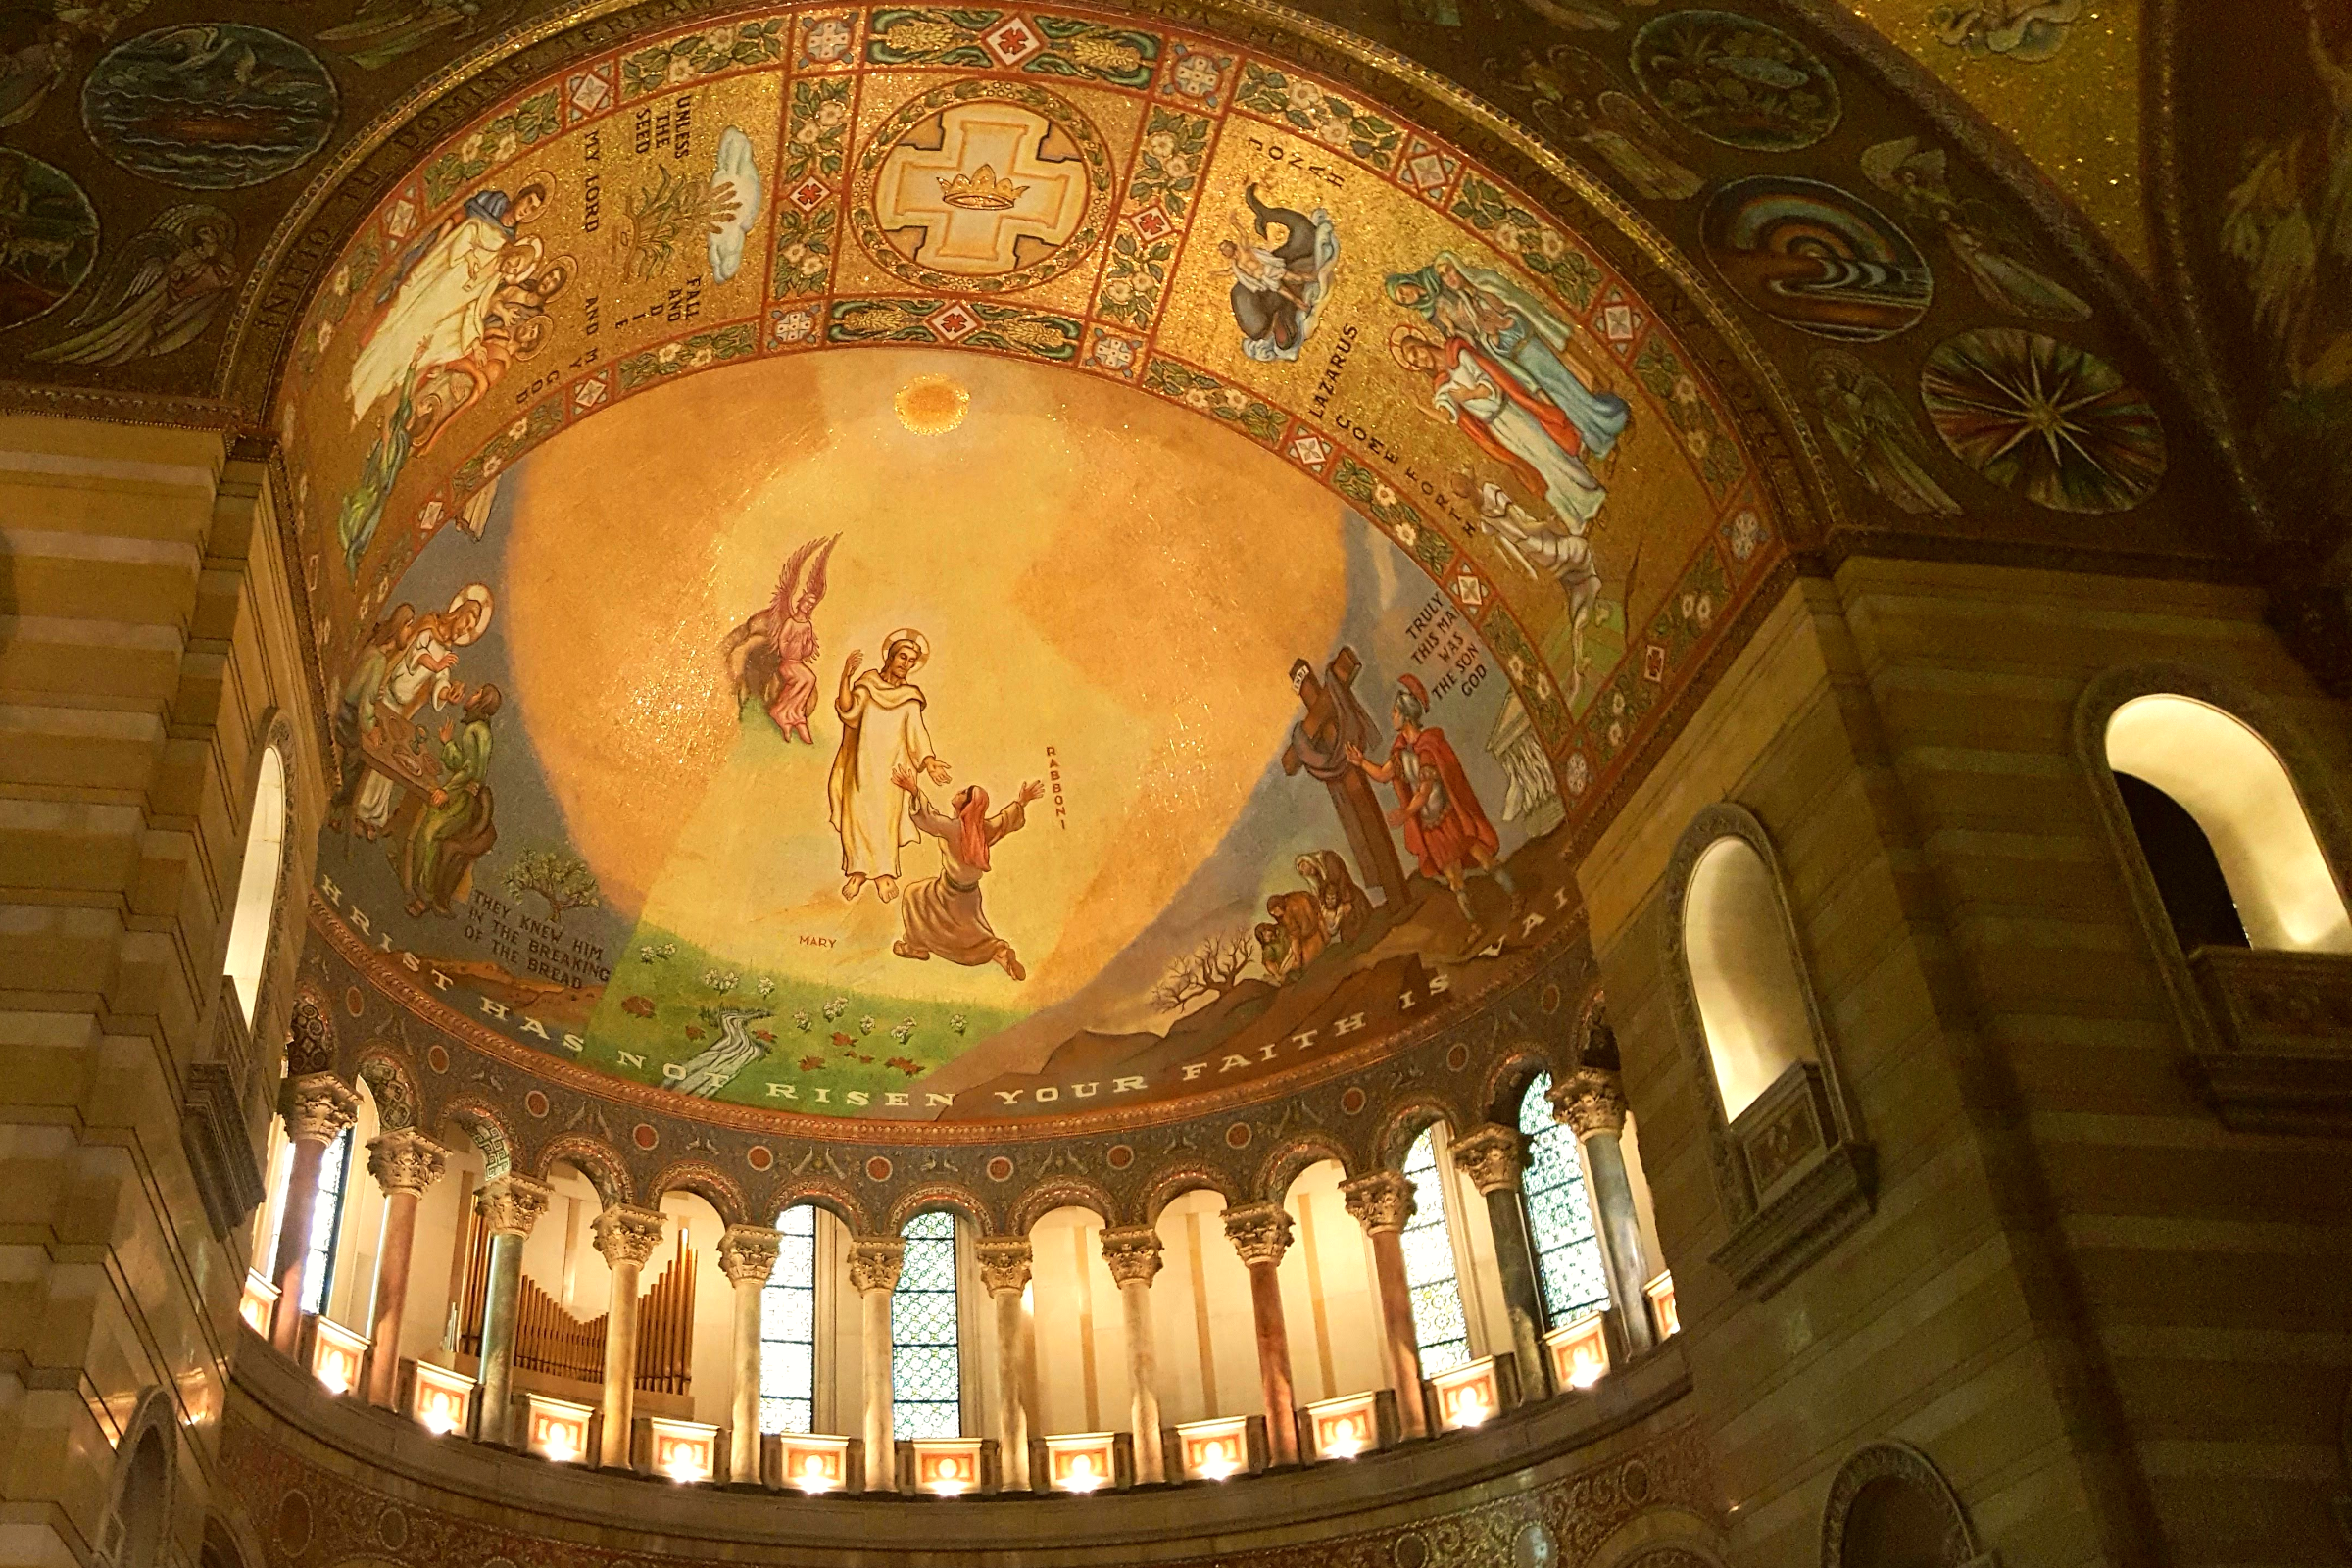 The Cathedral Basilica of St. Louis is visually opulent Photo Courtesy Patrick T Cooper